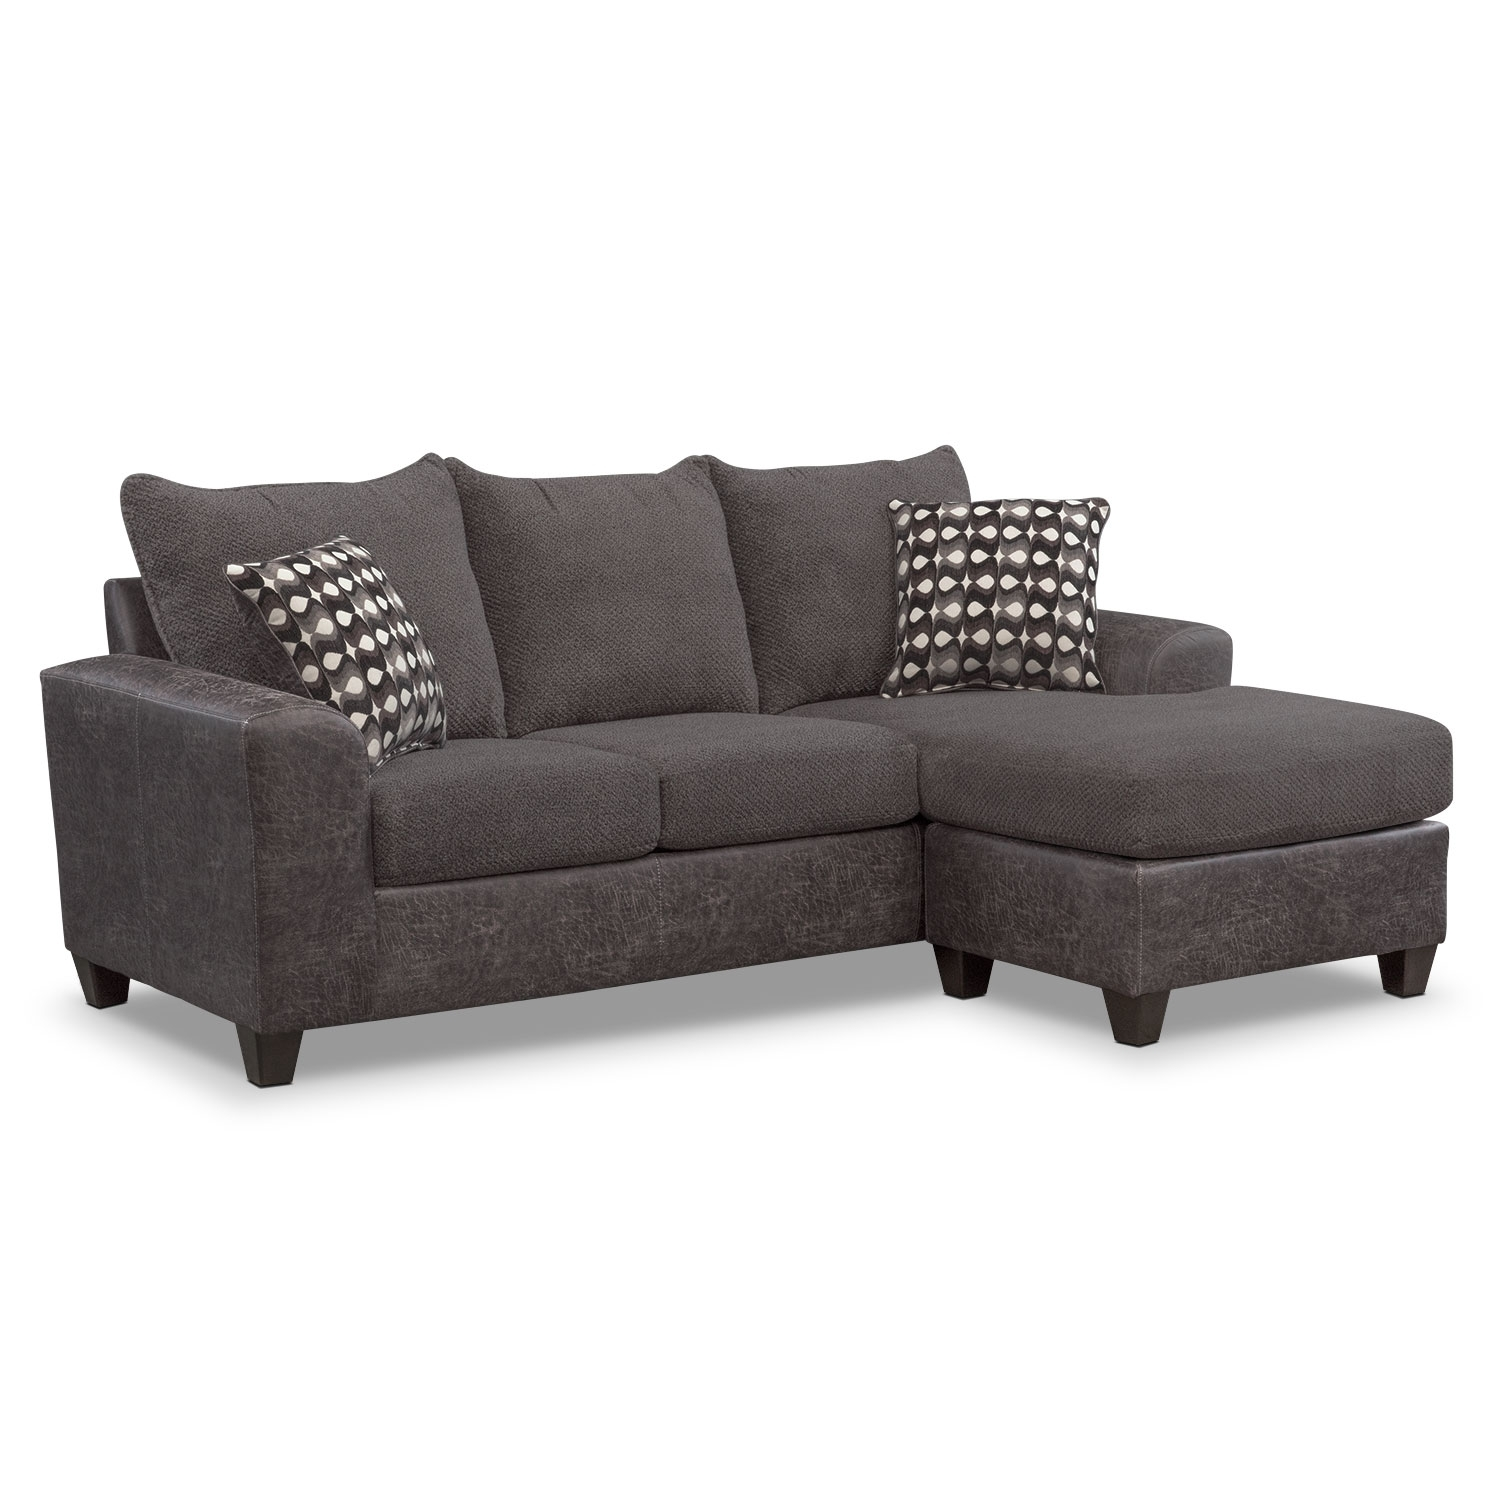 Sofas And Couches | Living Room Seating | Value City Furniture And in Aquarius Light Grey 2 Piece Sectionals With Laf Chaise (Image 28 of 30)